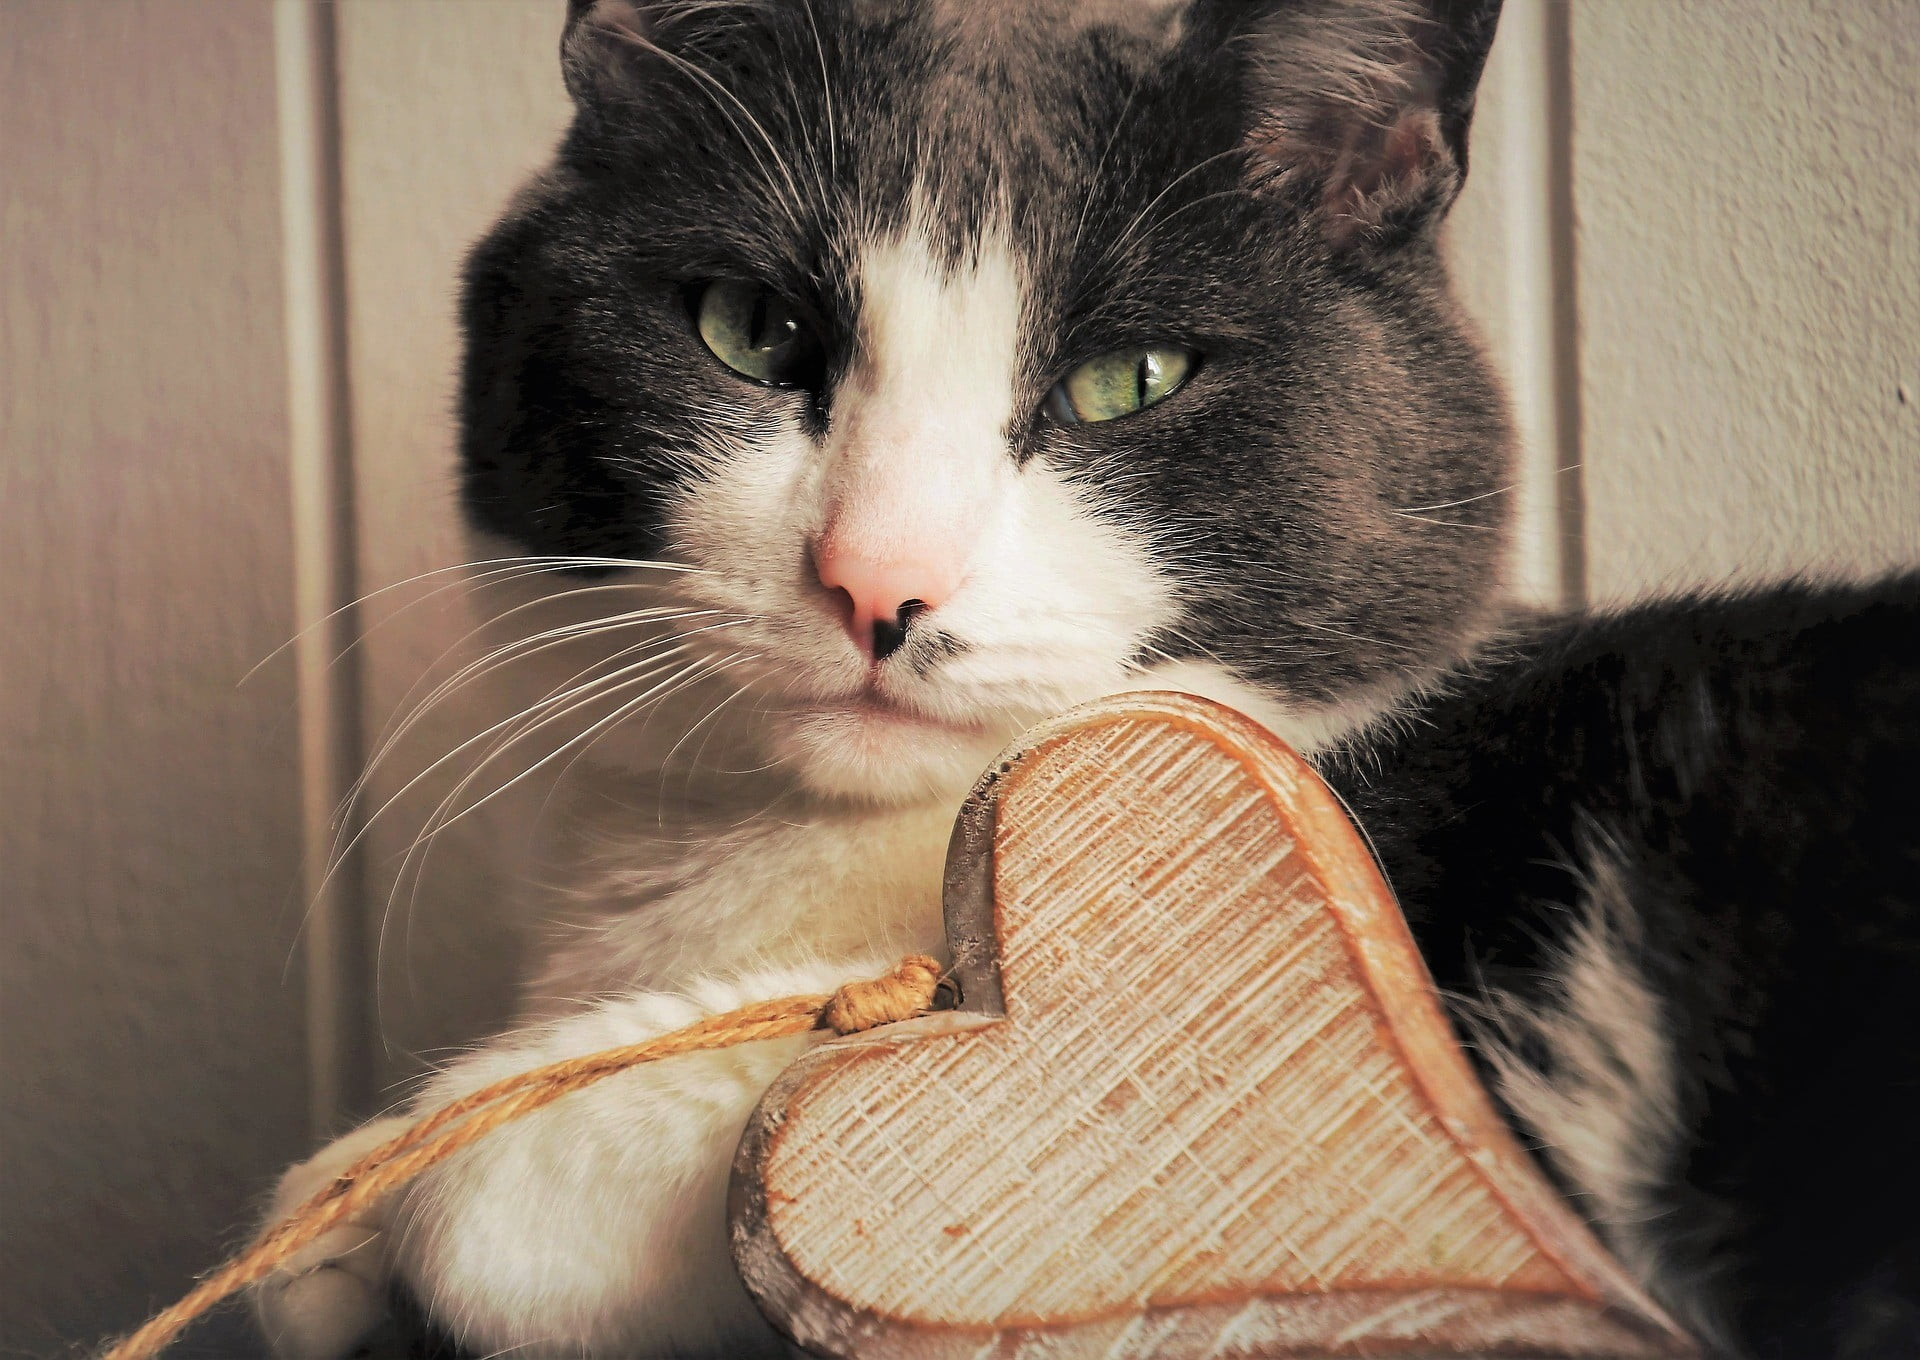 These Six Tips Can Help You to Gain Your Cat's Affection | PawTracks